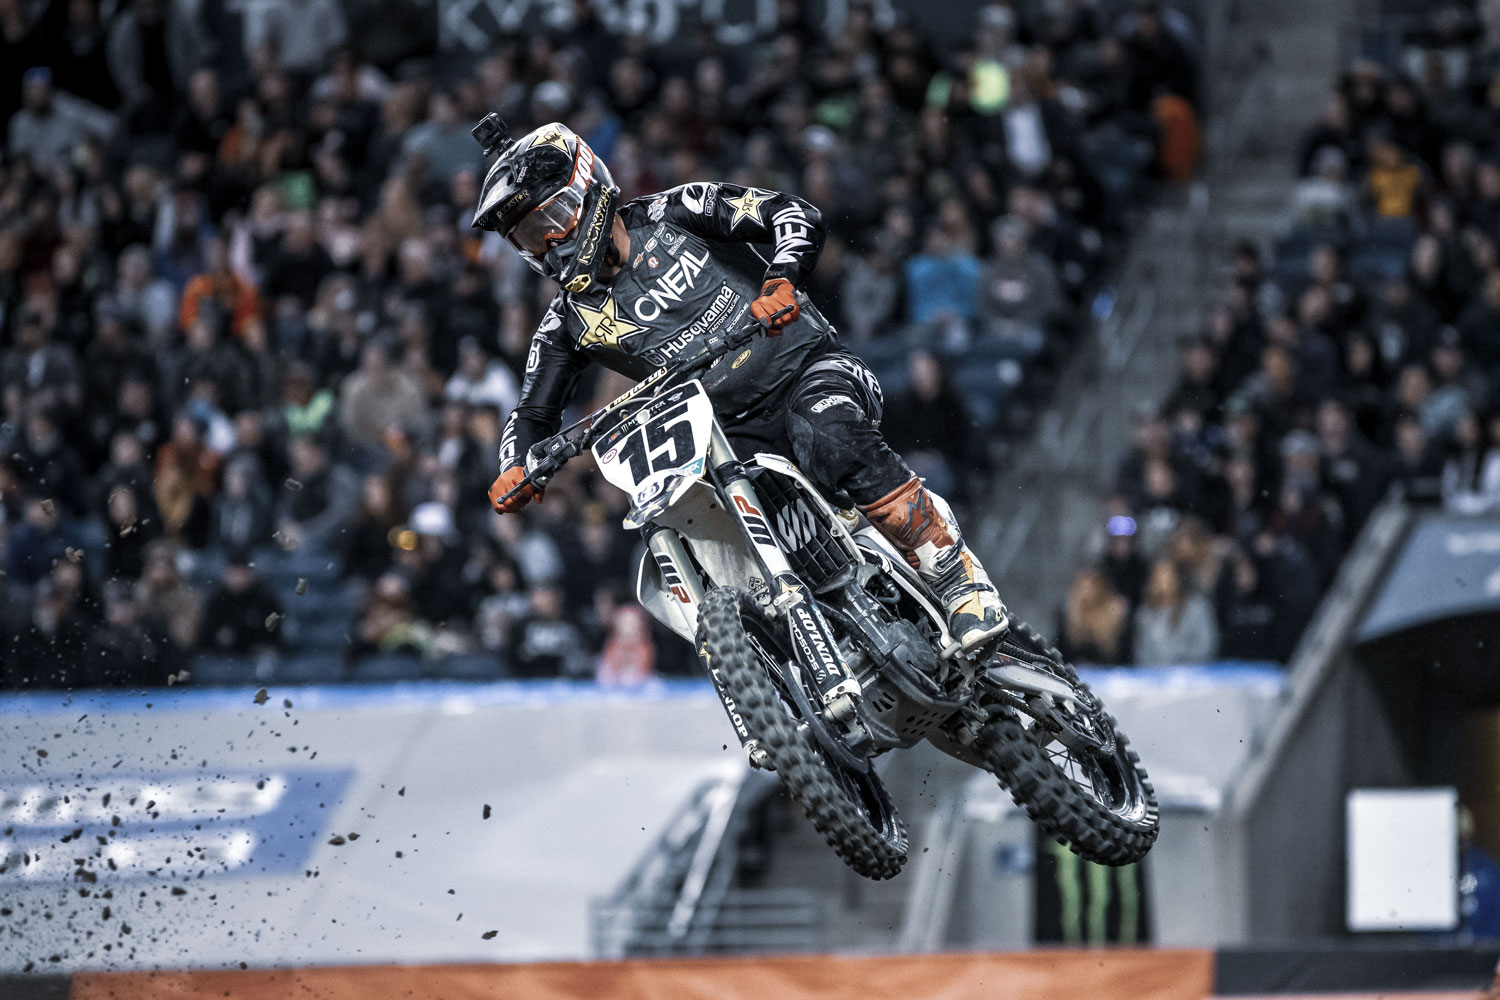 WILSON_2019_SEATTLE_SX_web2.jpg